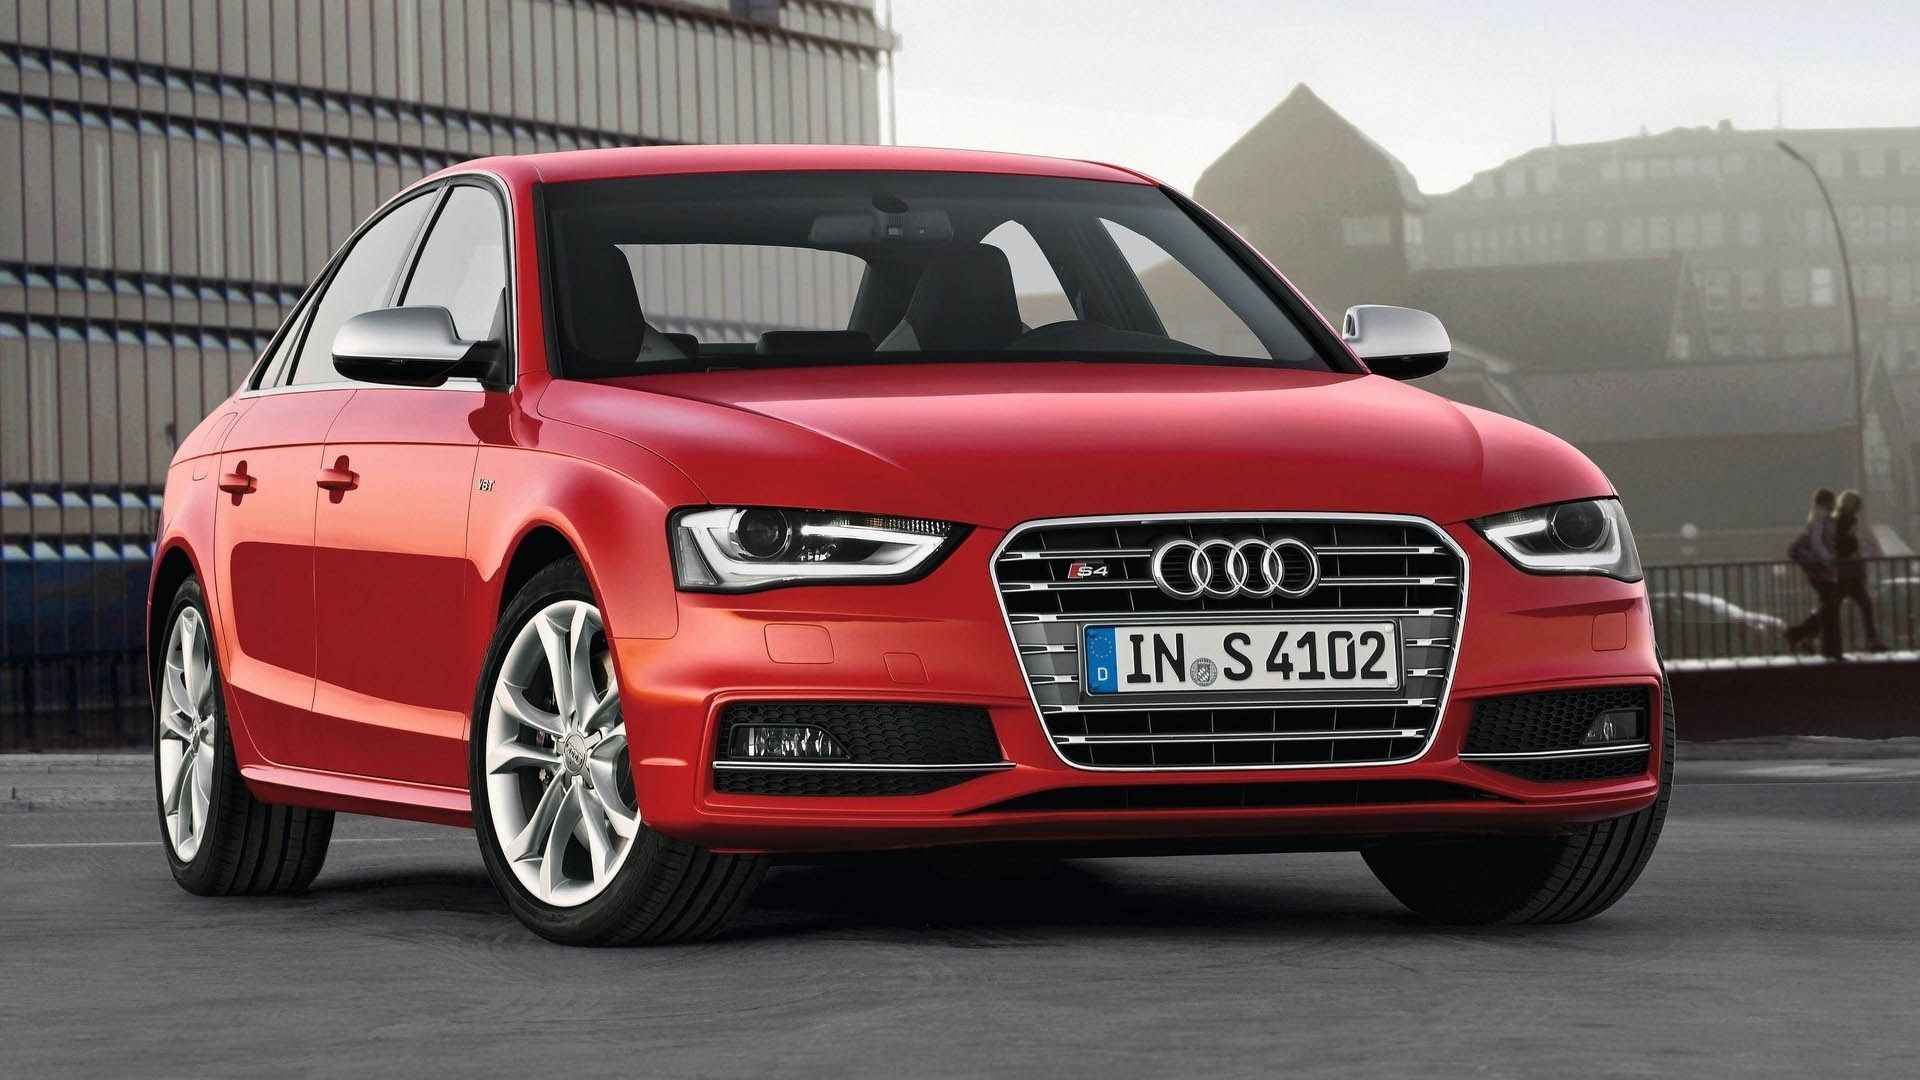 audi pictures to download Audi s4, Audi, Audi a4